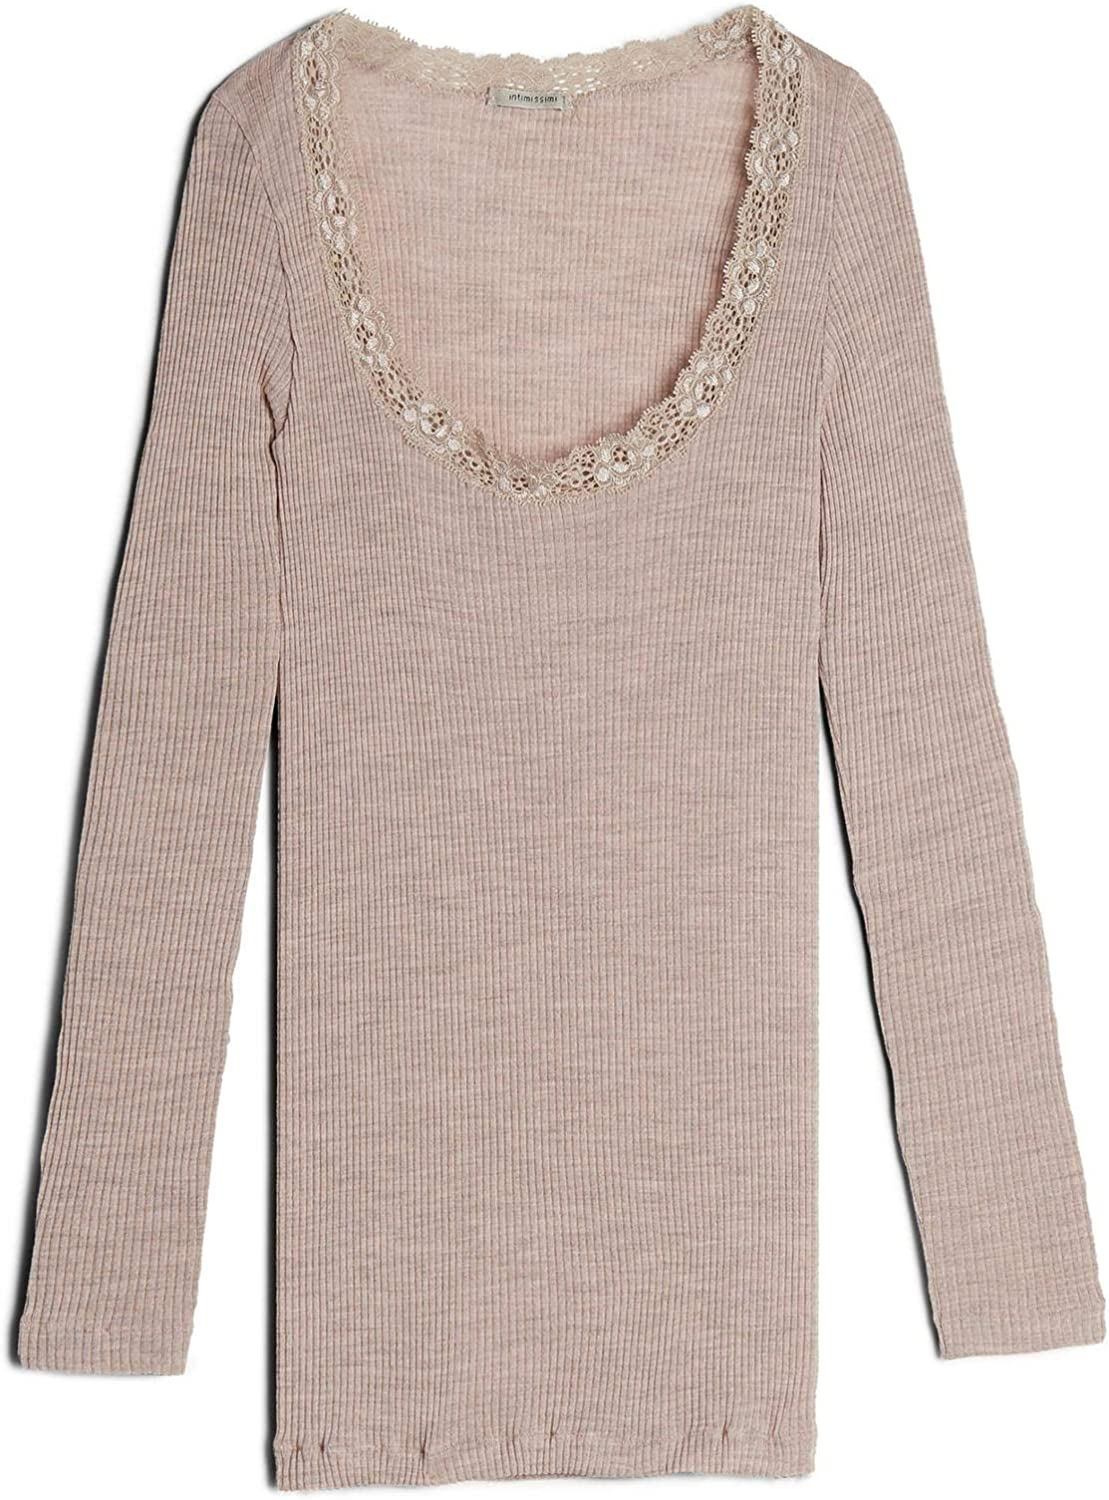 Intimissimi Womens Silk and Wool Top with Lace-Detail Neckline